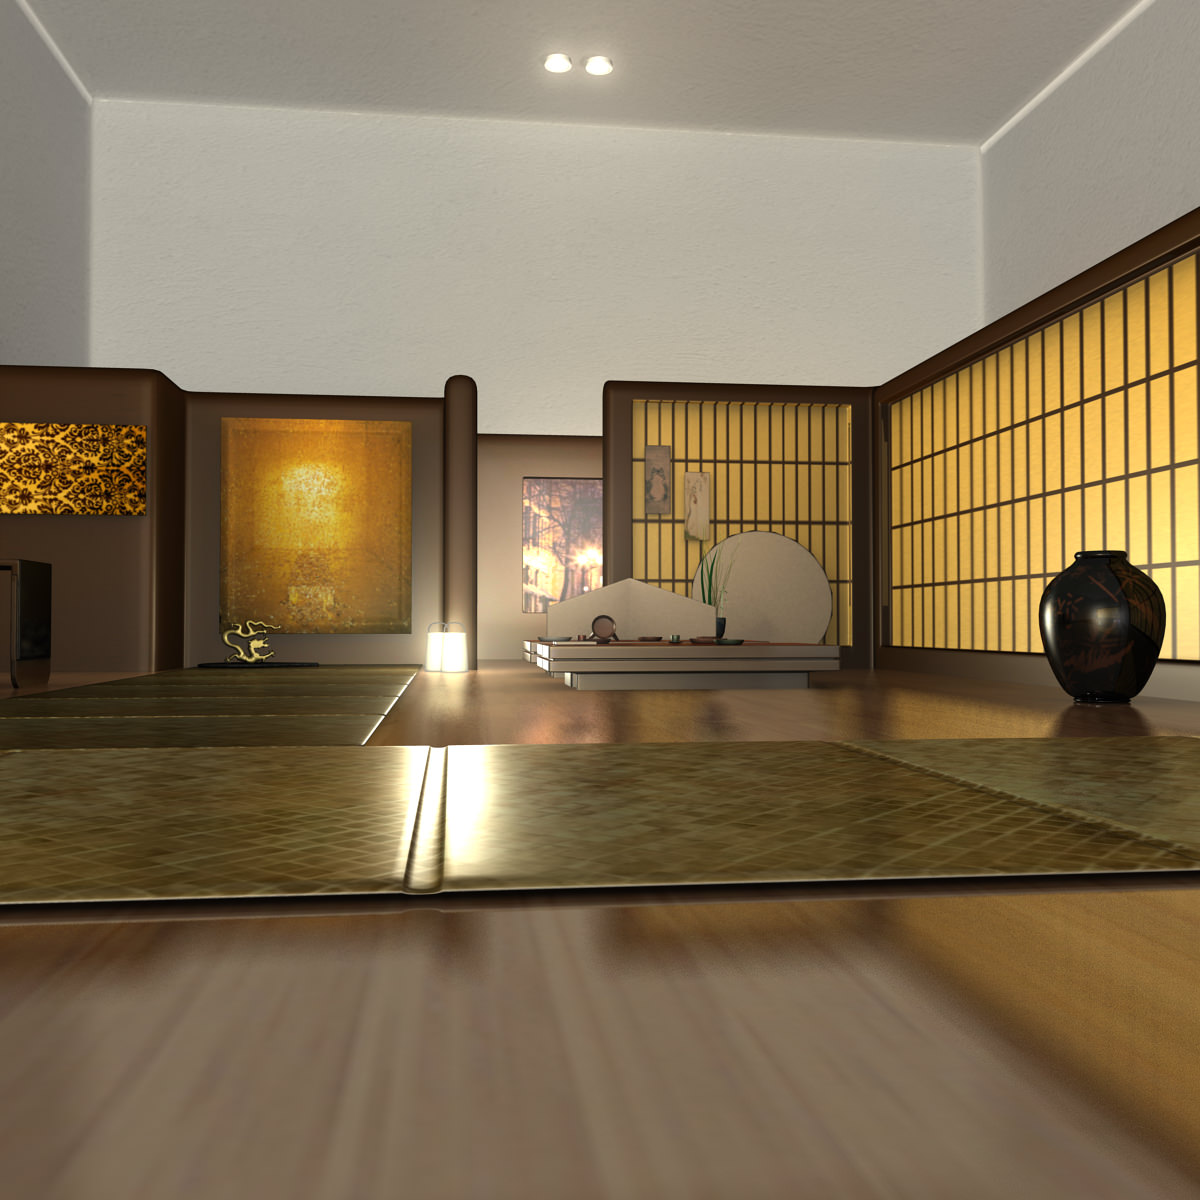 japanese tea house interior photo - 3